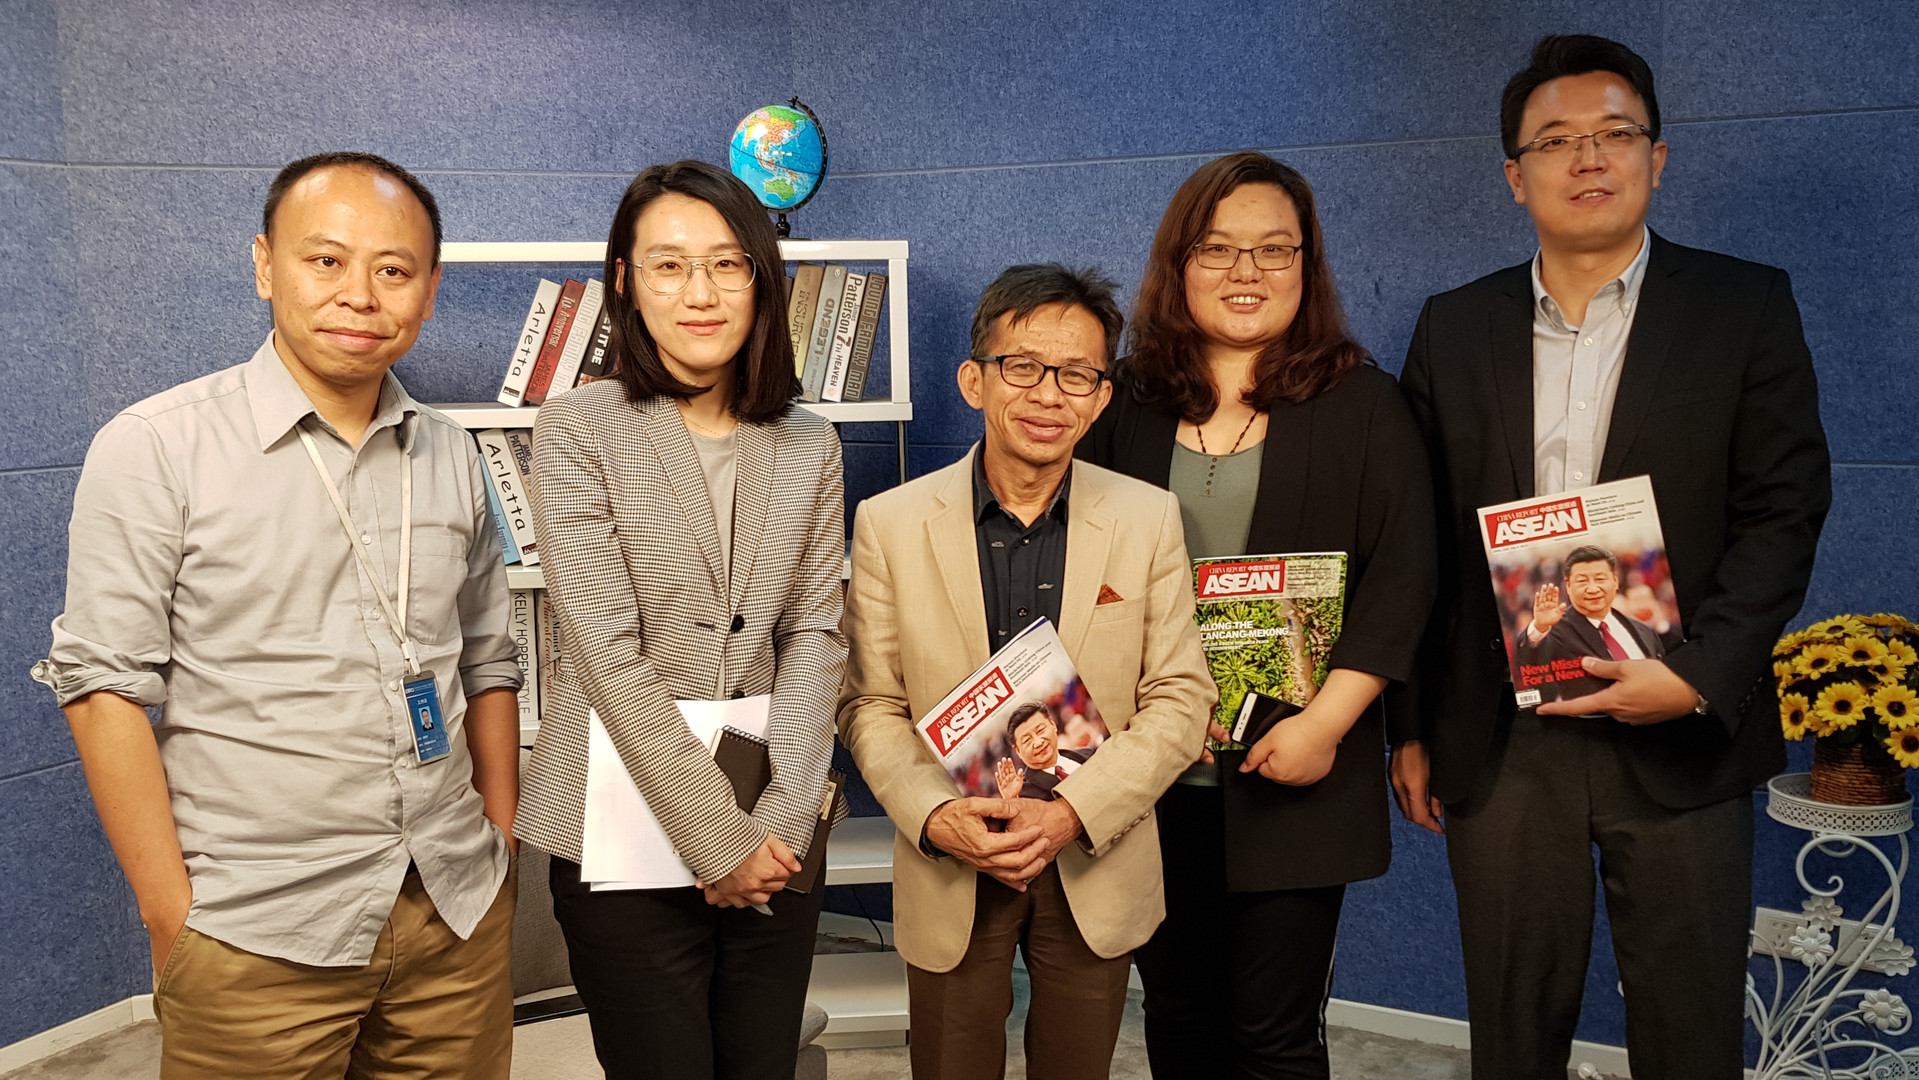 Intervied by China Report ASEAN Magazine